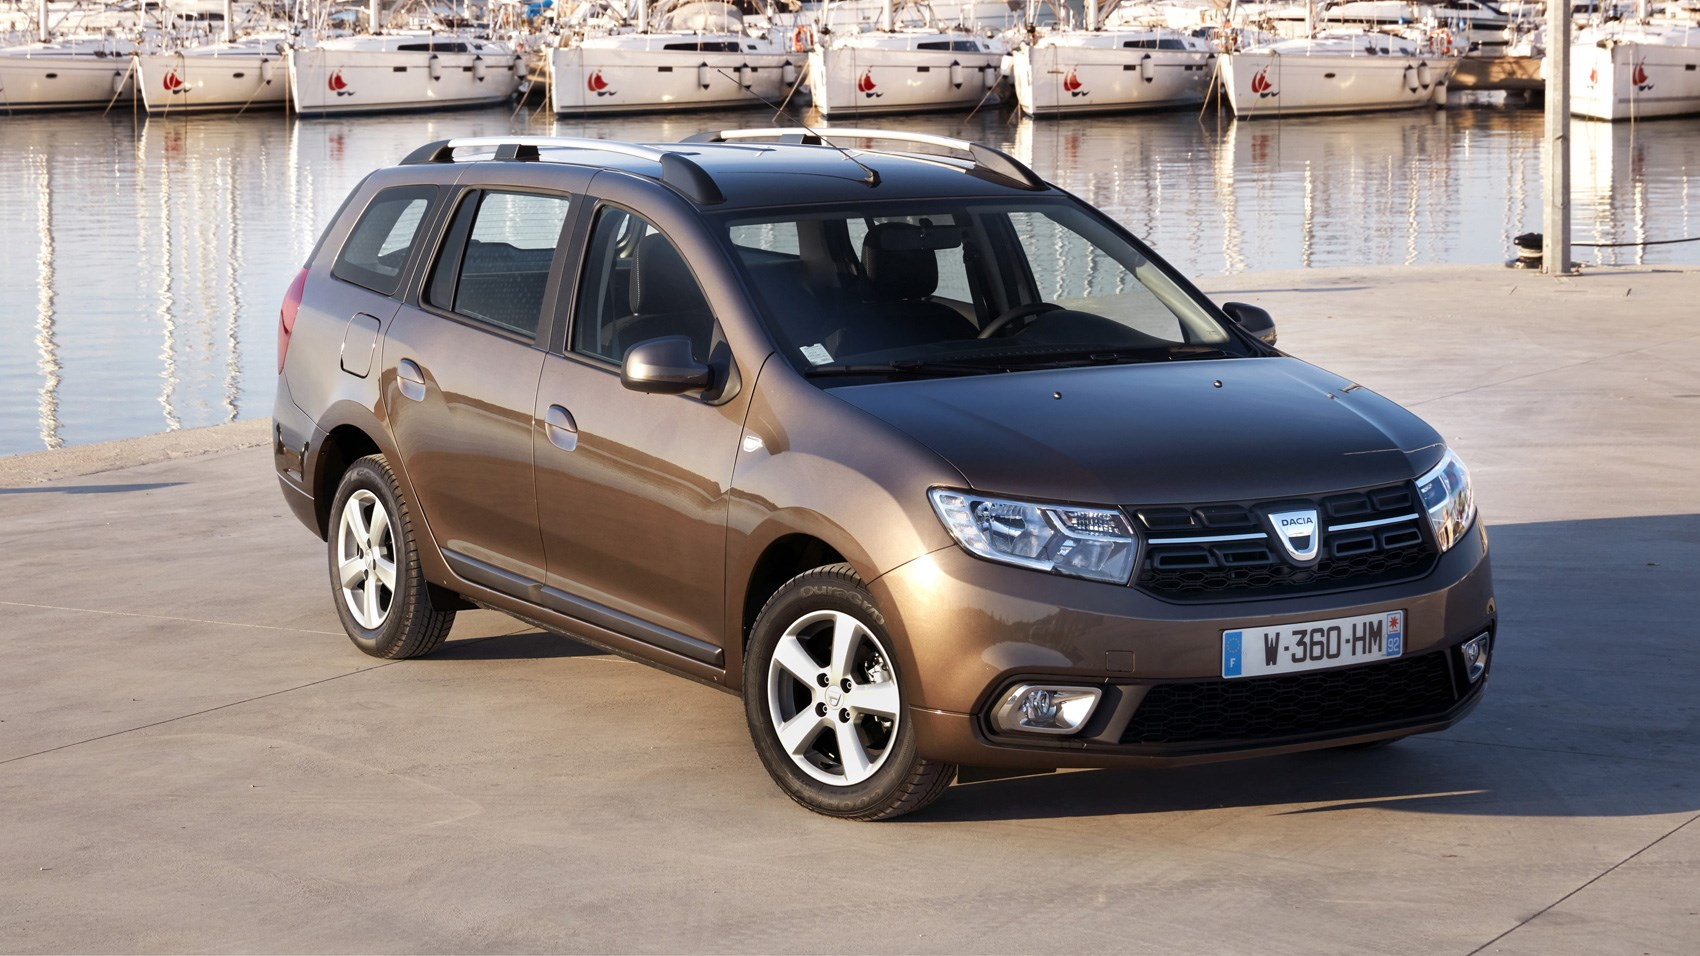 dacia logan mcv ambiance dci 90 2017 review car magazine. Black Bedroom Furniture Sets. Home Design Ideas